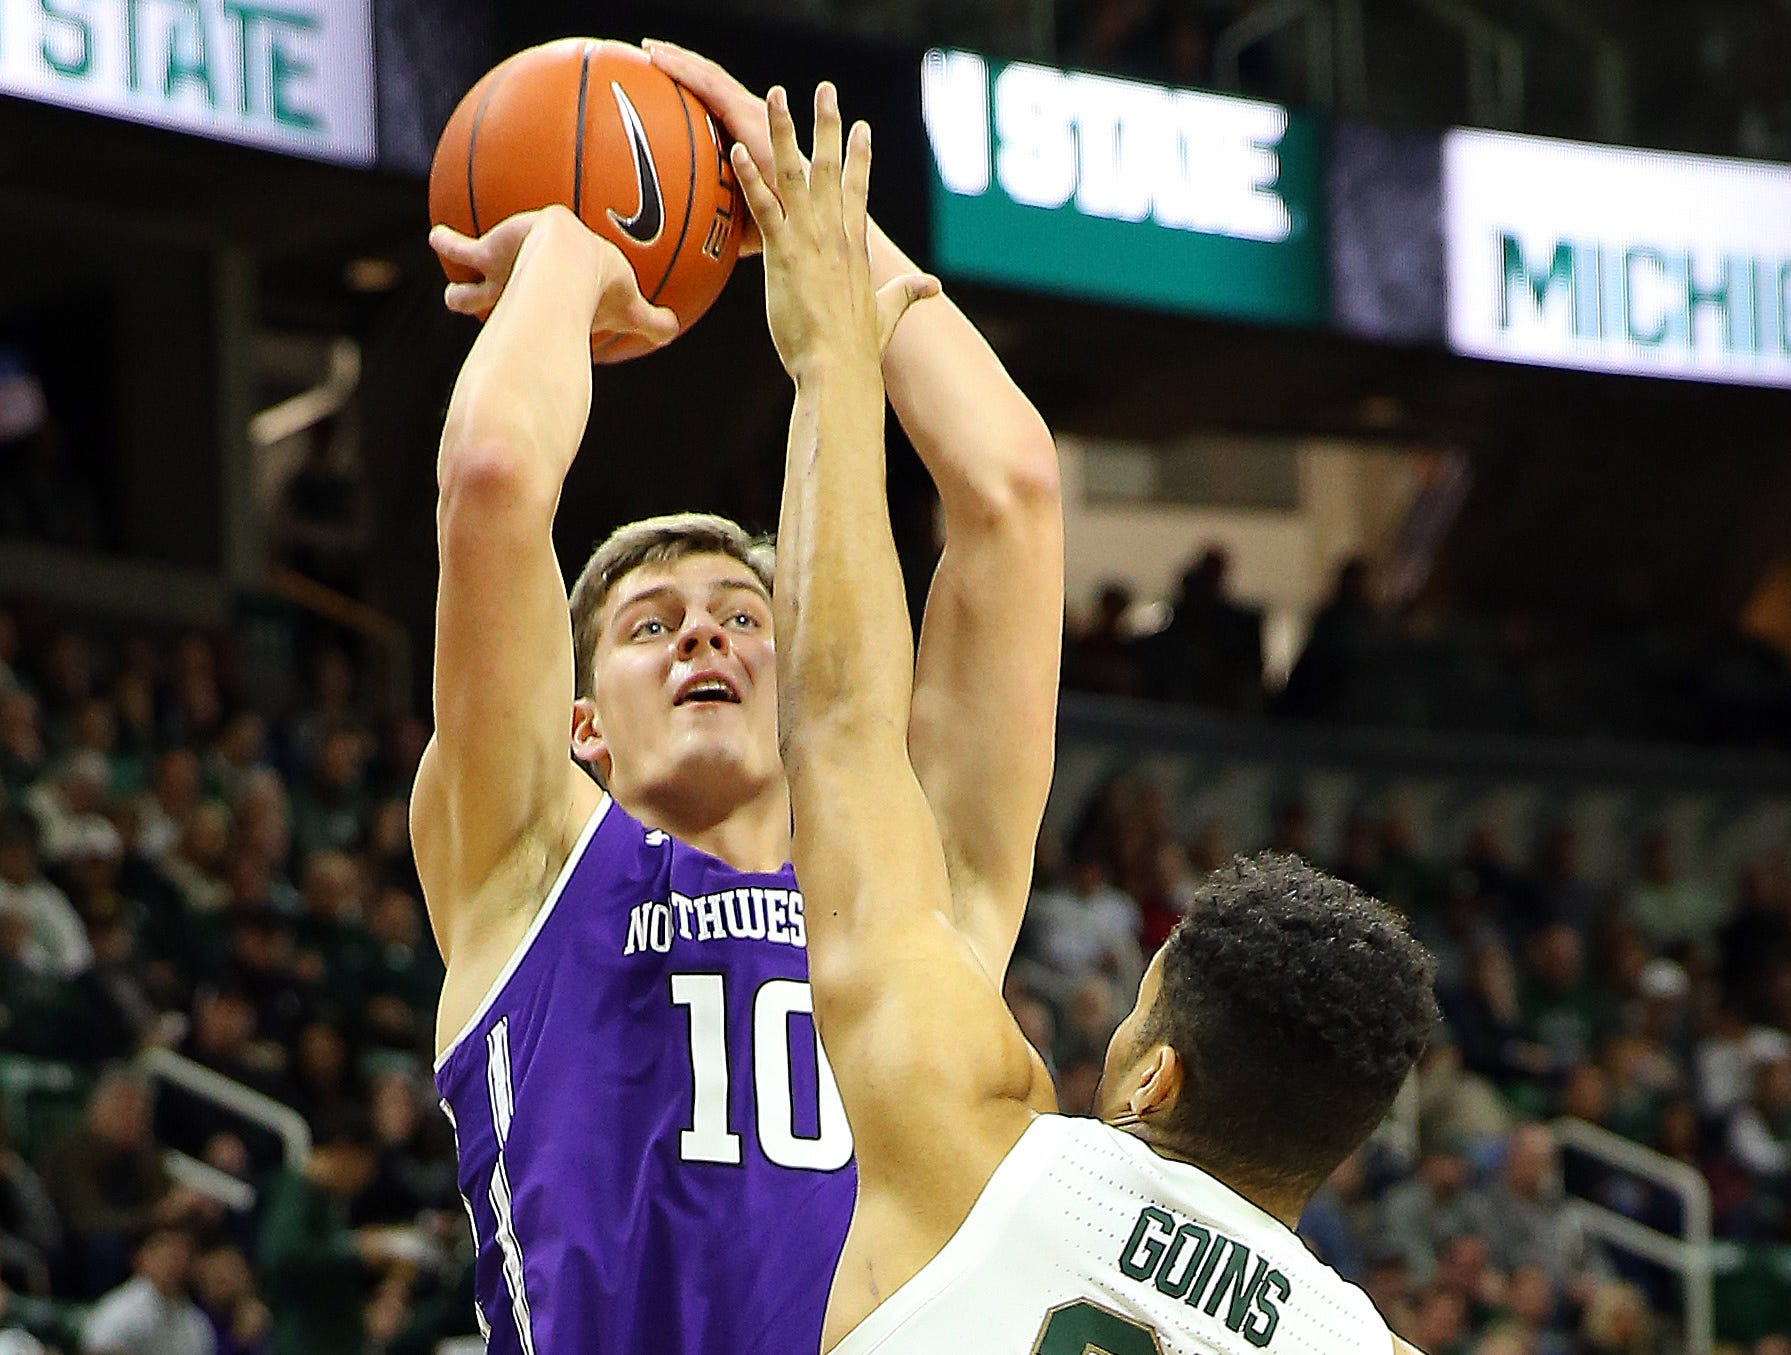 Jan 2, 2019; East Lansing, MI, USA; Northwestern Wildcats forward Miller Kopp (10) shoots over Michigan State Spartans forward Kenny Goins (25) during the first half of a game at the Breslin Center. Mandatory Credit: Mike Carter-USA TODAY Sports